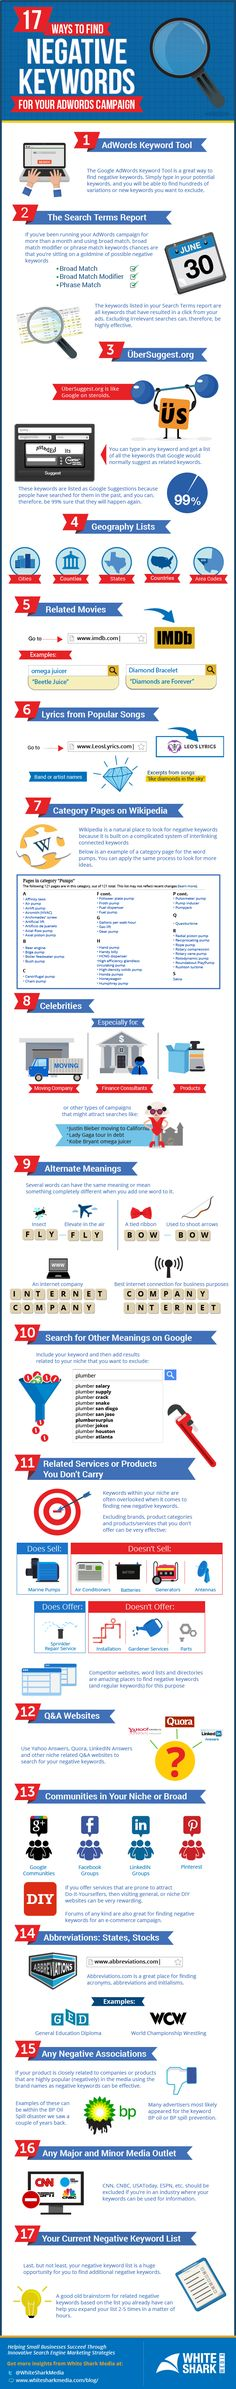 17-Ways to Find Negative Keywords Infographic